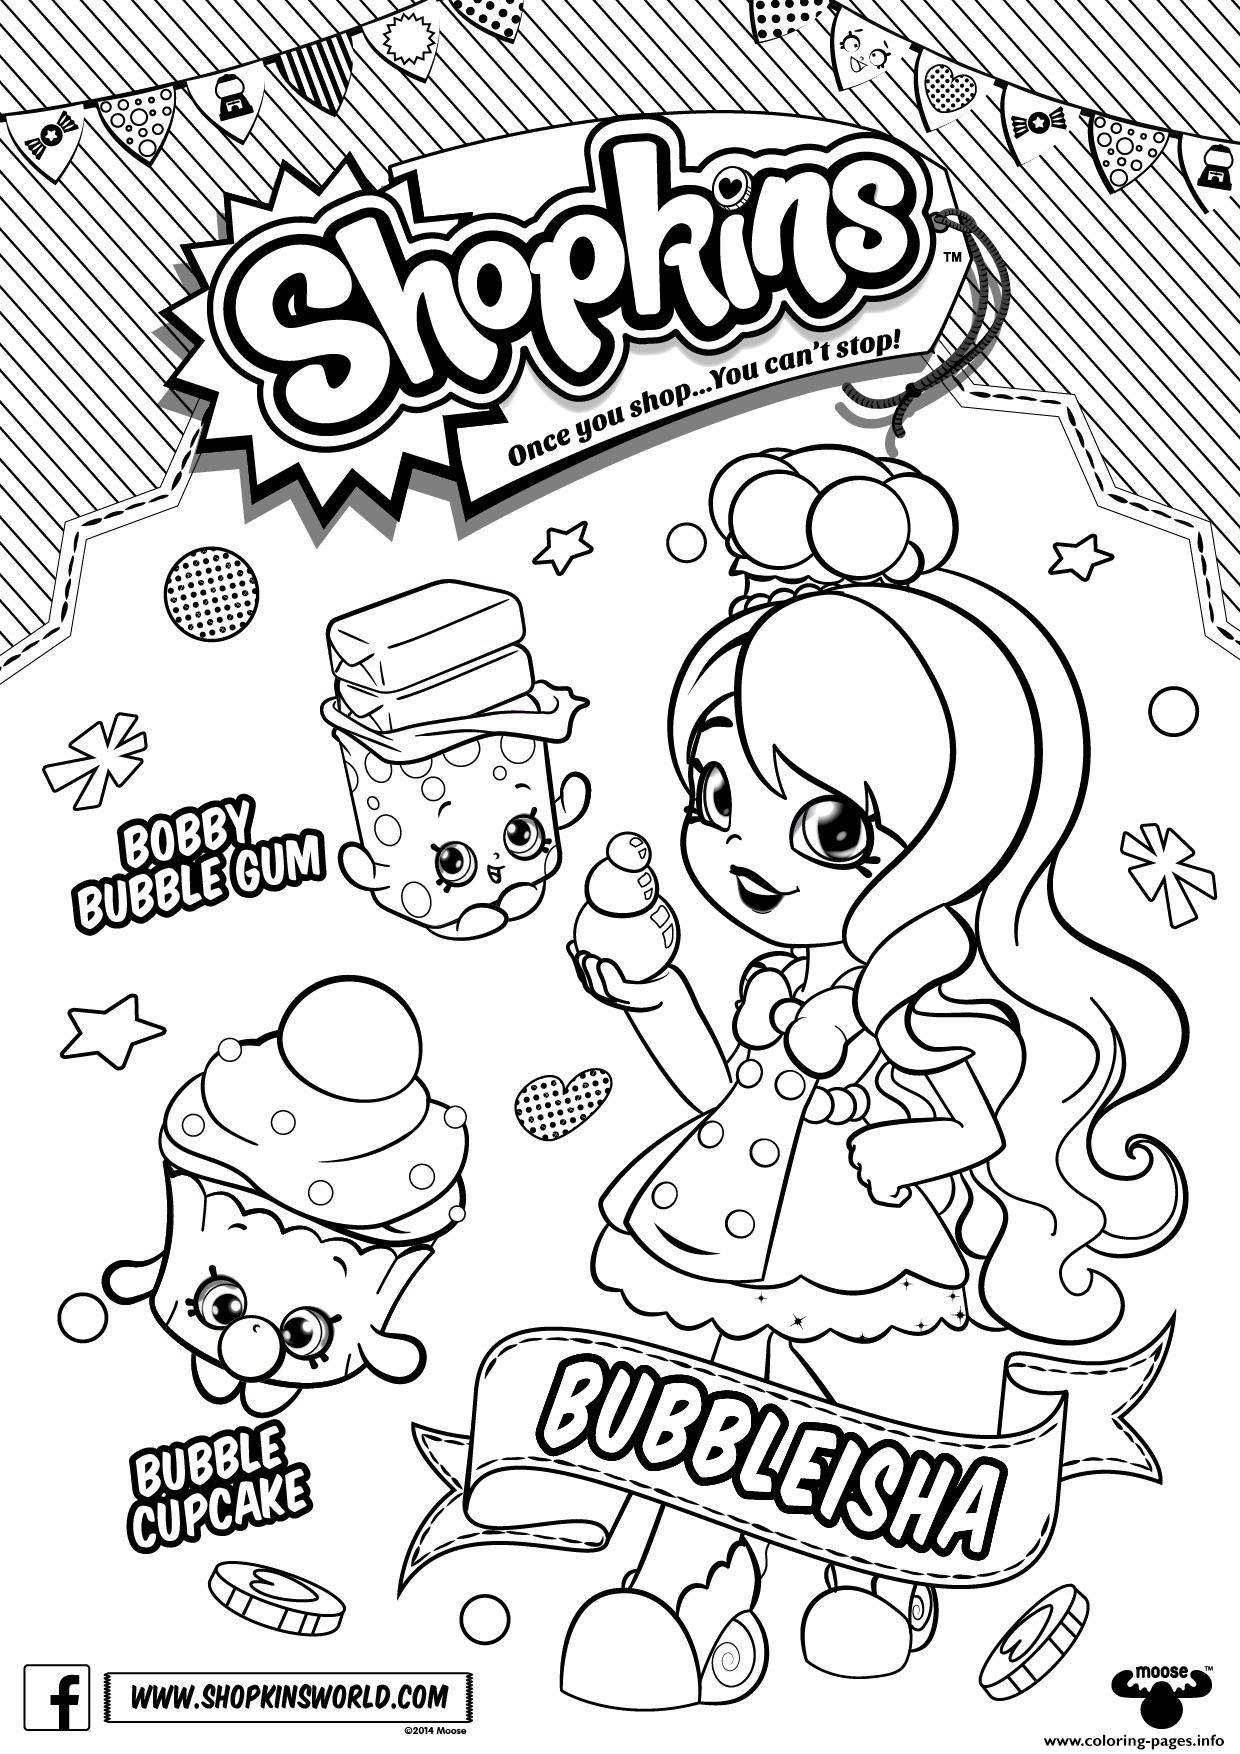 Shopkins Coloring Pages Bubbleisha